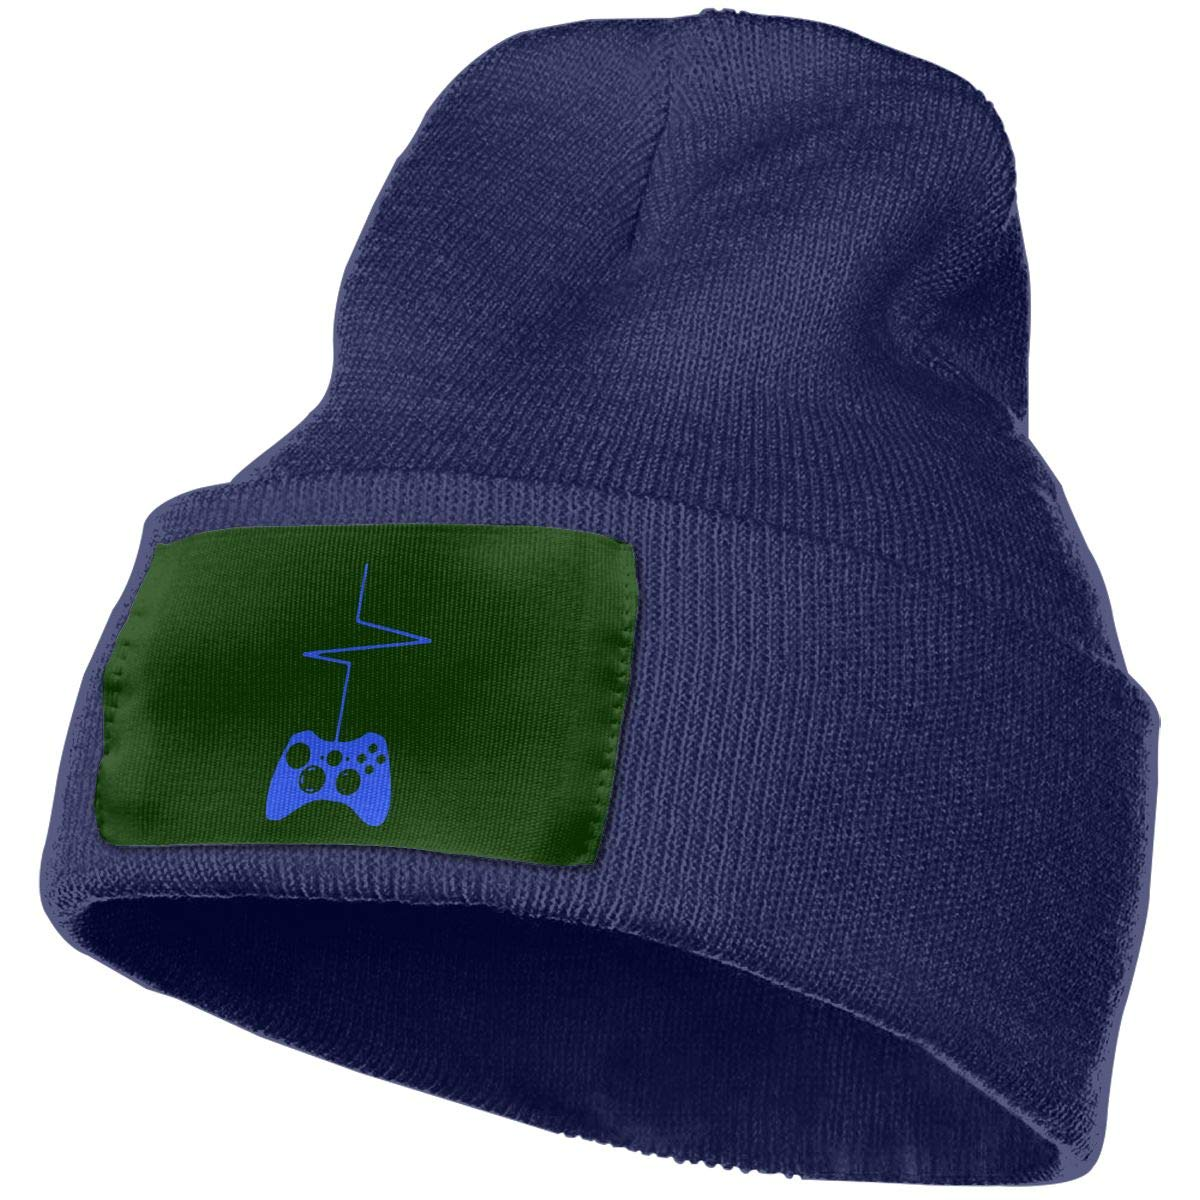 Heartbeat of A Gamer Unisex 3D Knitted Hat Skull Hat Beanie Cap